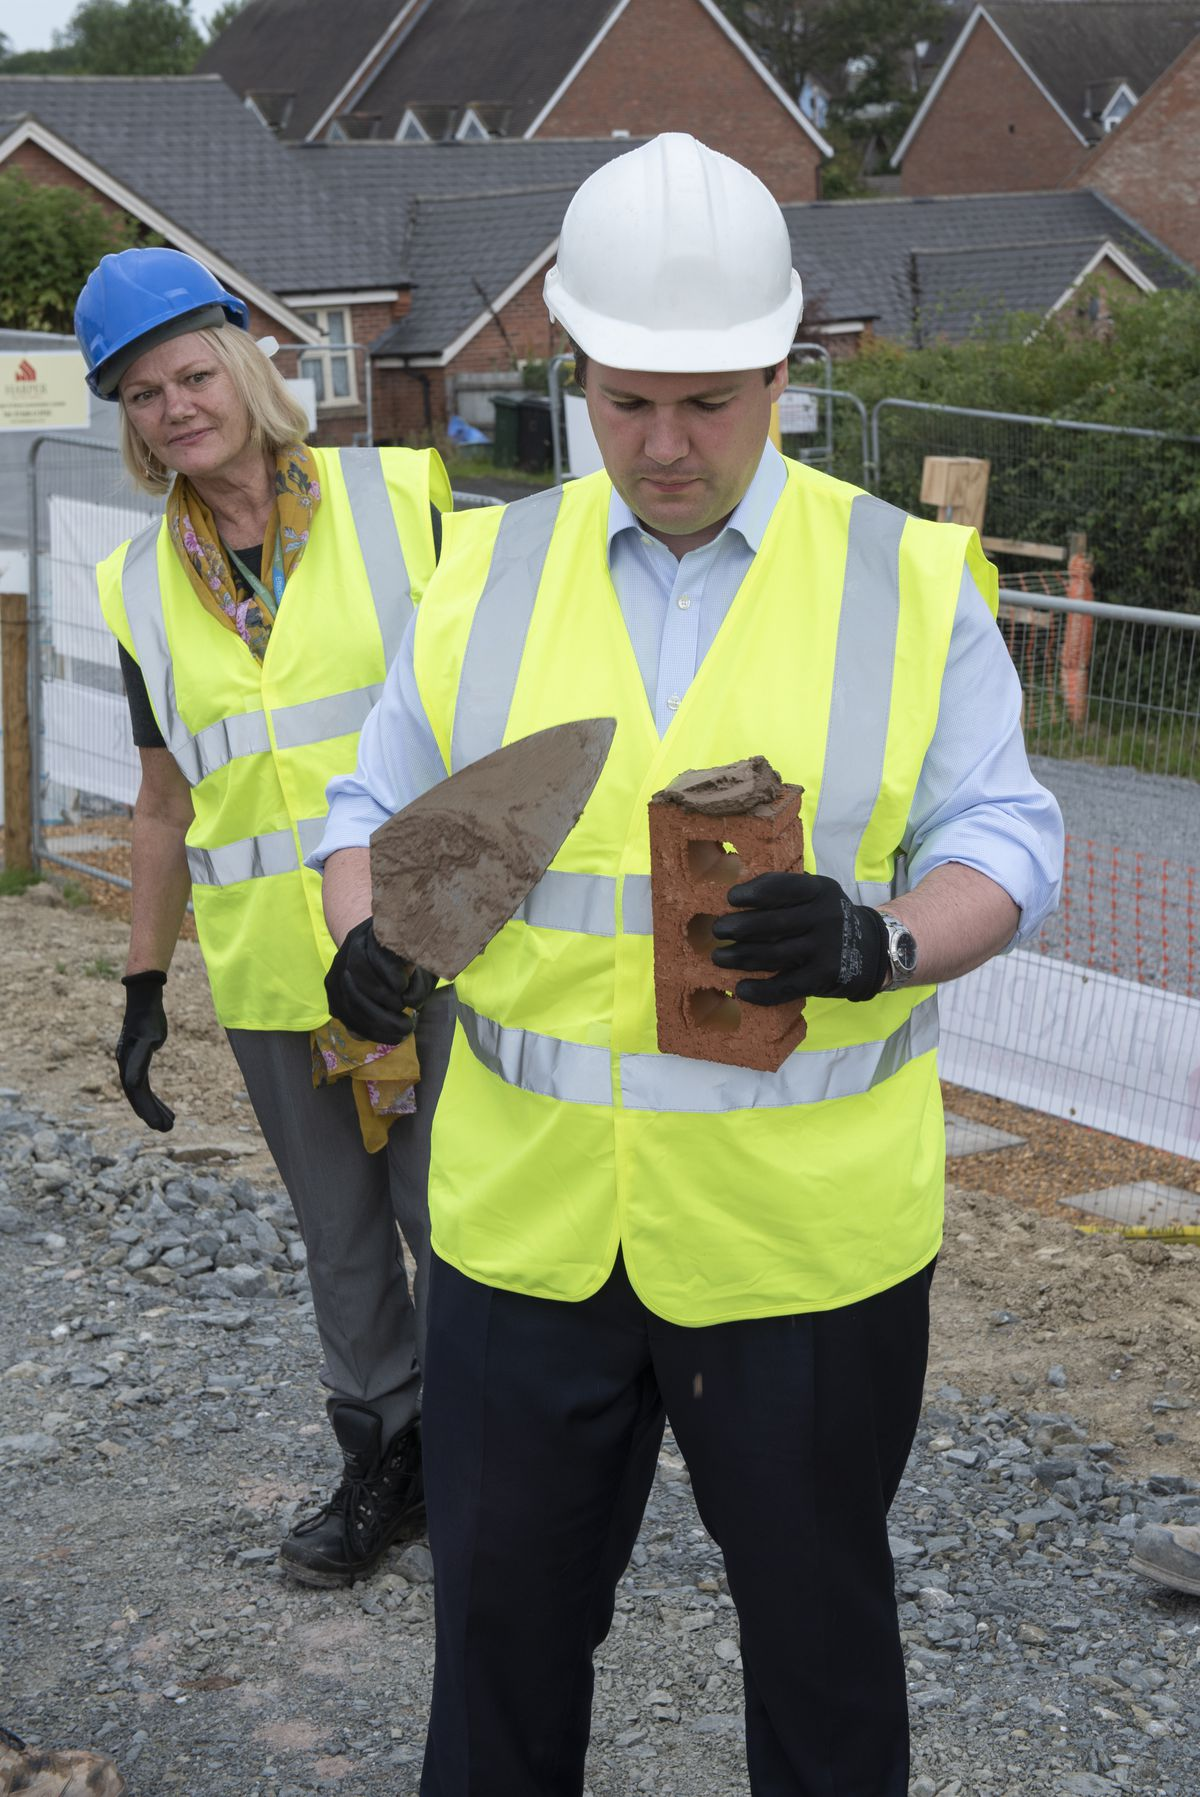 Secretary of State for Housing, Communities and Local Government, Robert Jenrick MP